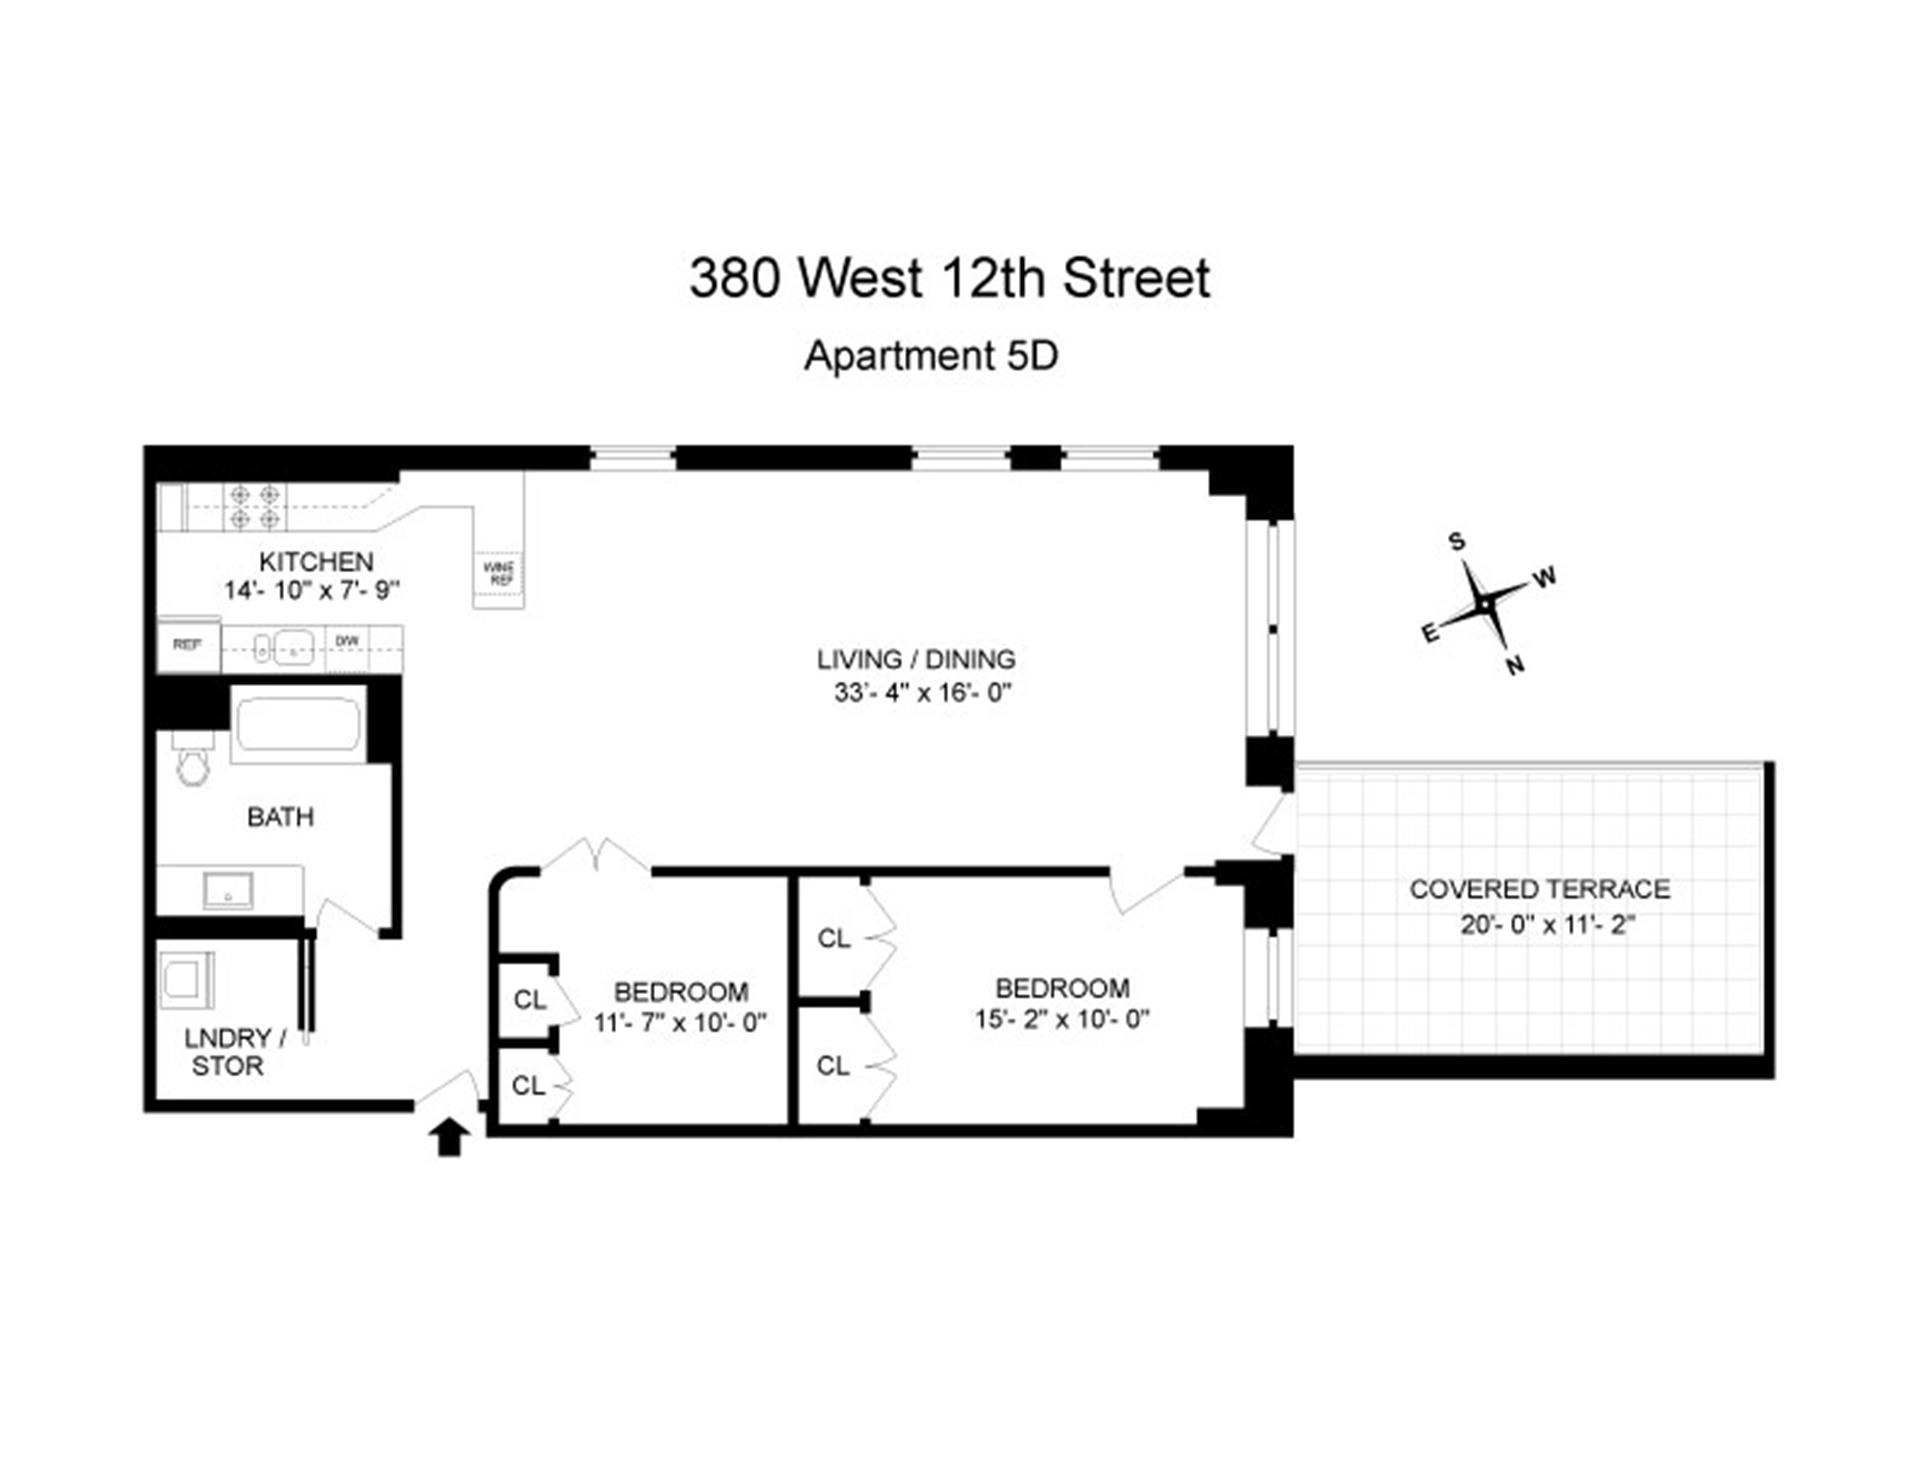 Floor plan of 380 West 12th St, 5D - West Village - Meatpacking District, New York